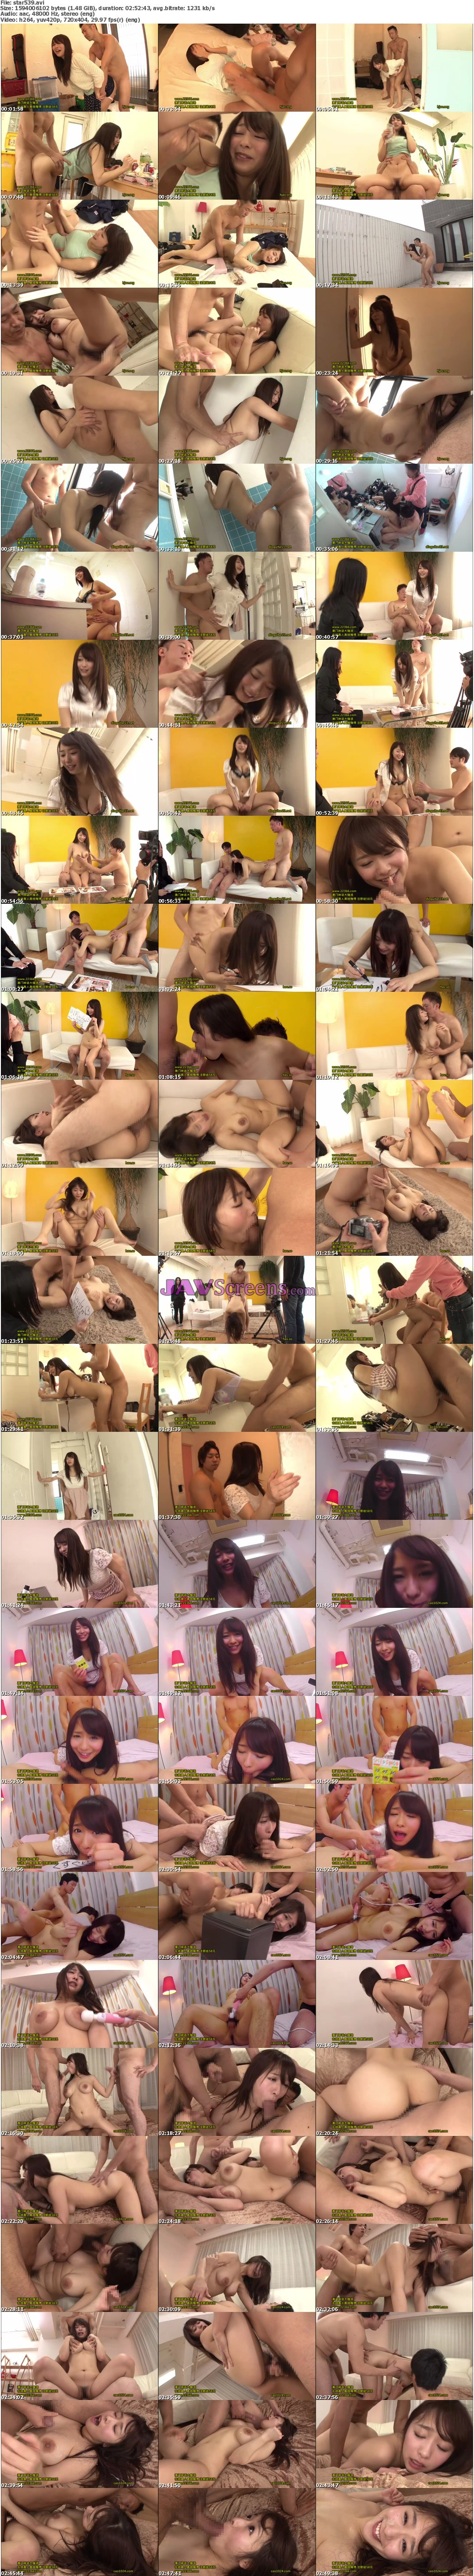 STAR-539.jpg - JAV Screenshot